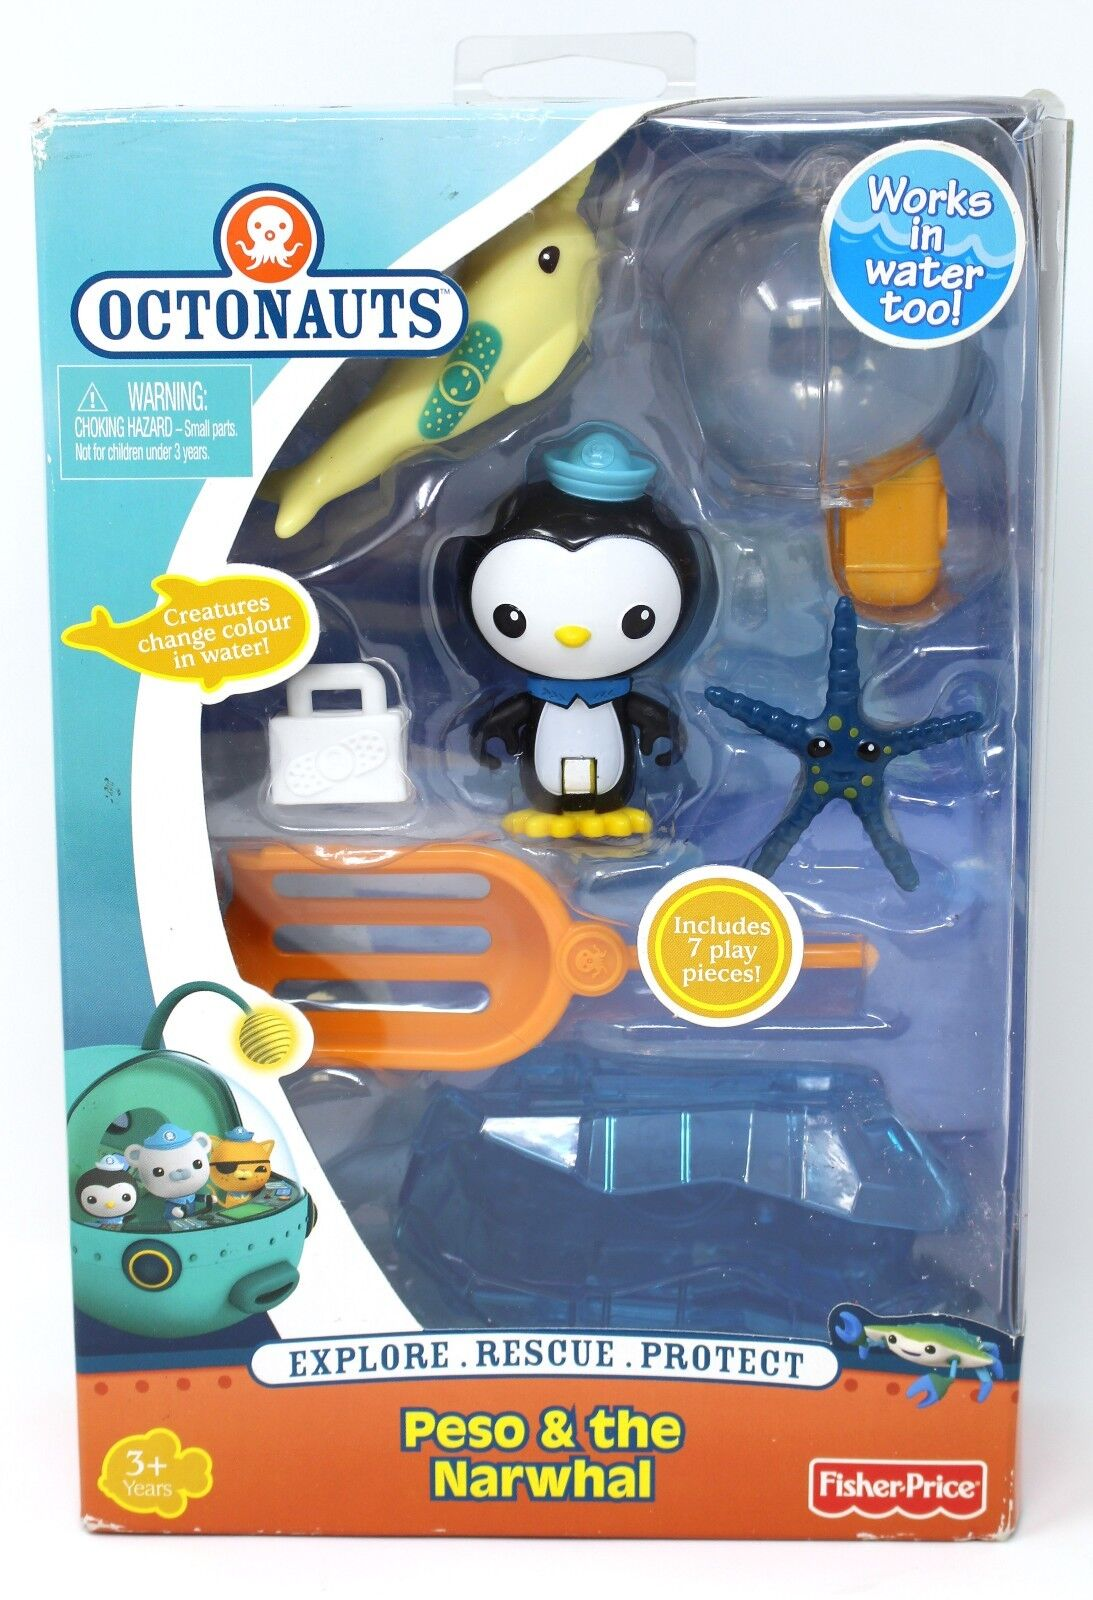 Octonauts actionfigur rettungs - kit peso und der einhornwal.fisher - price